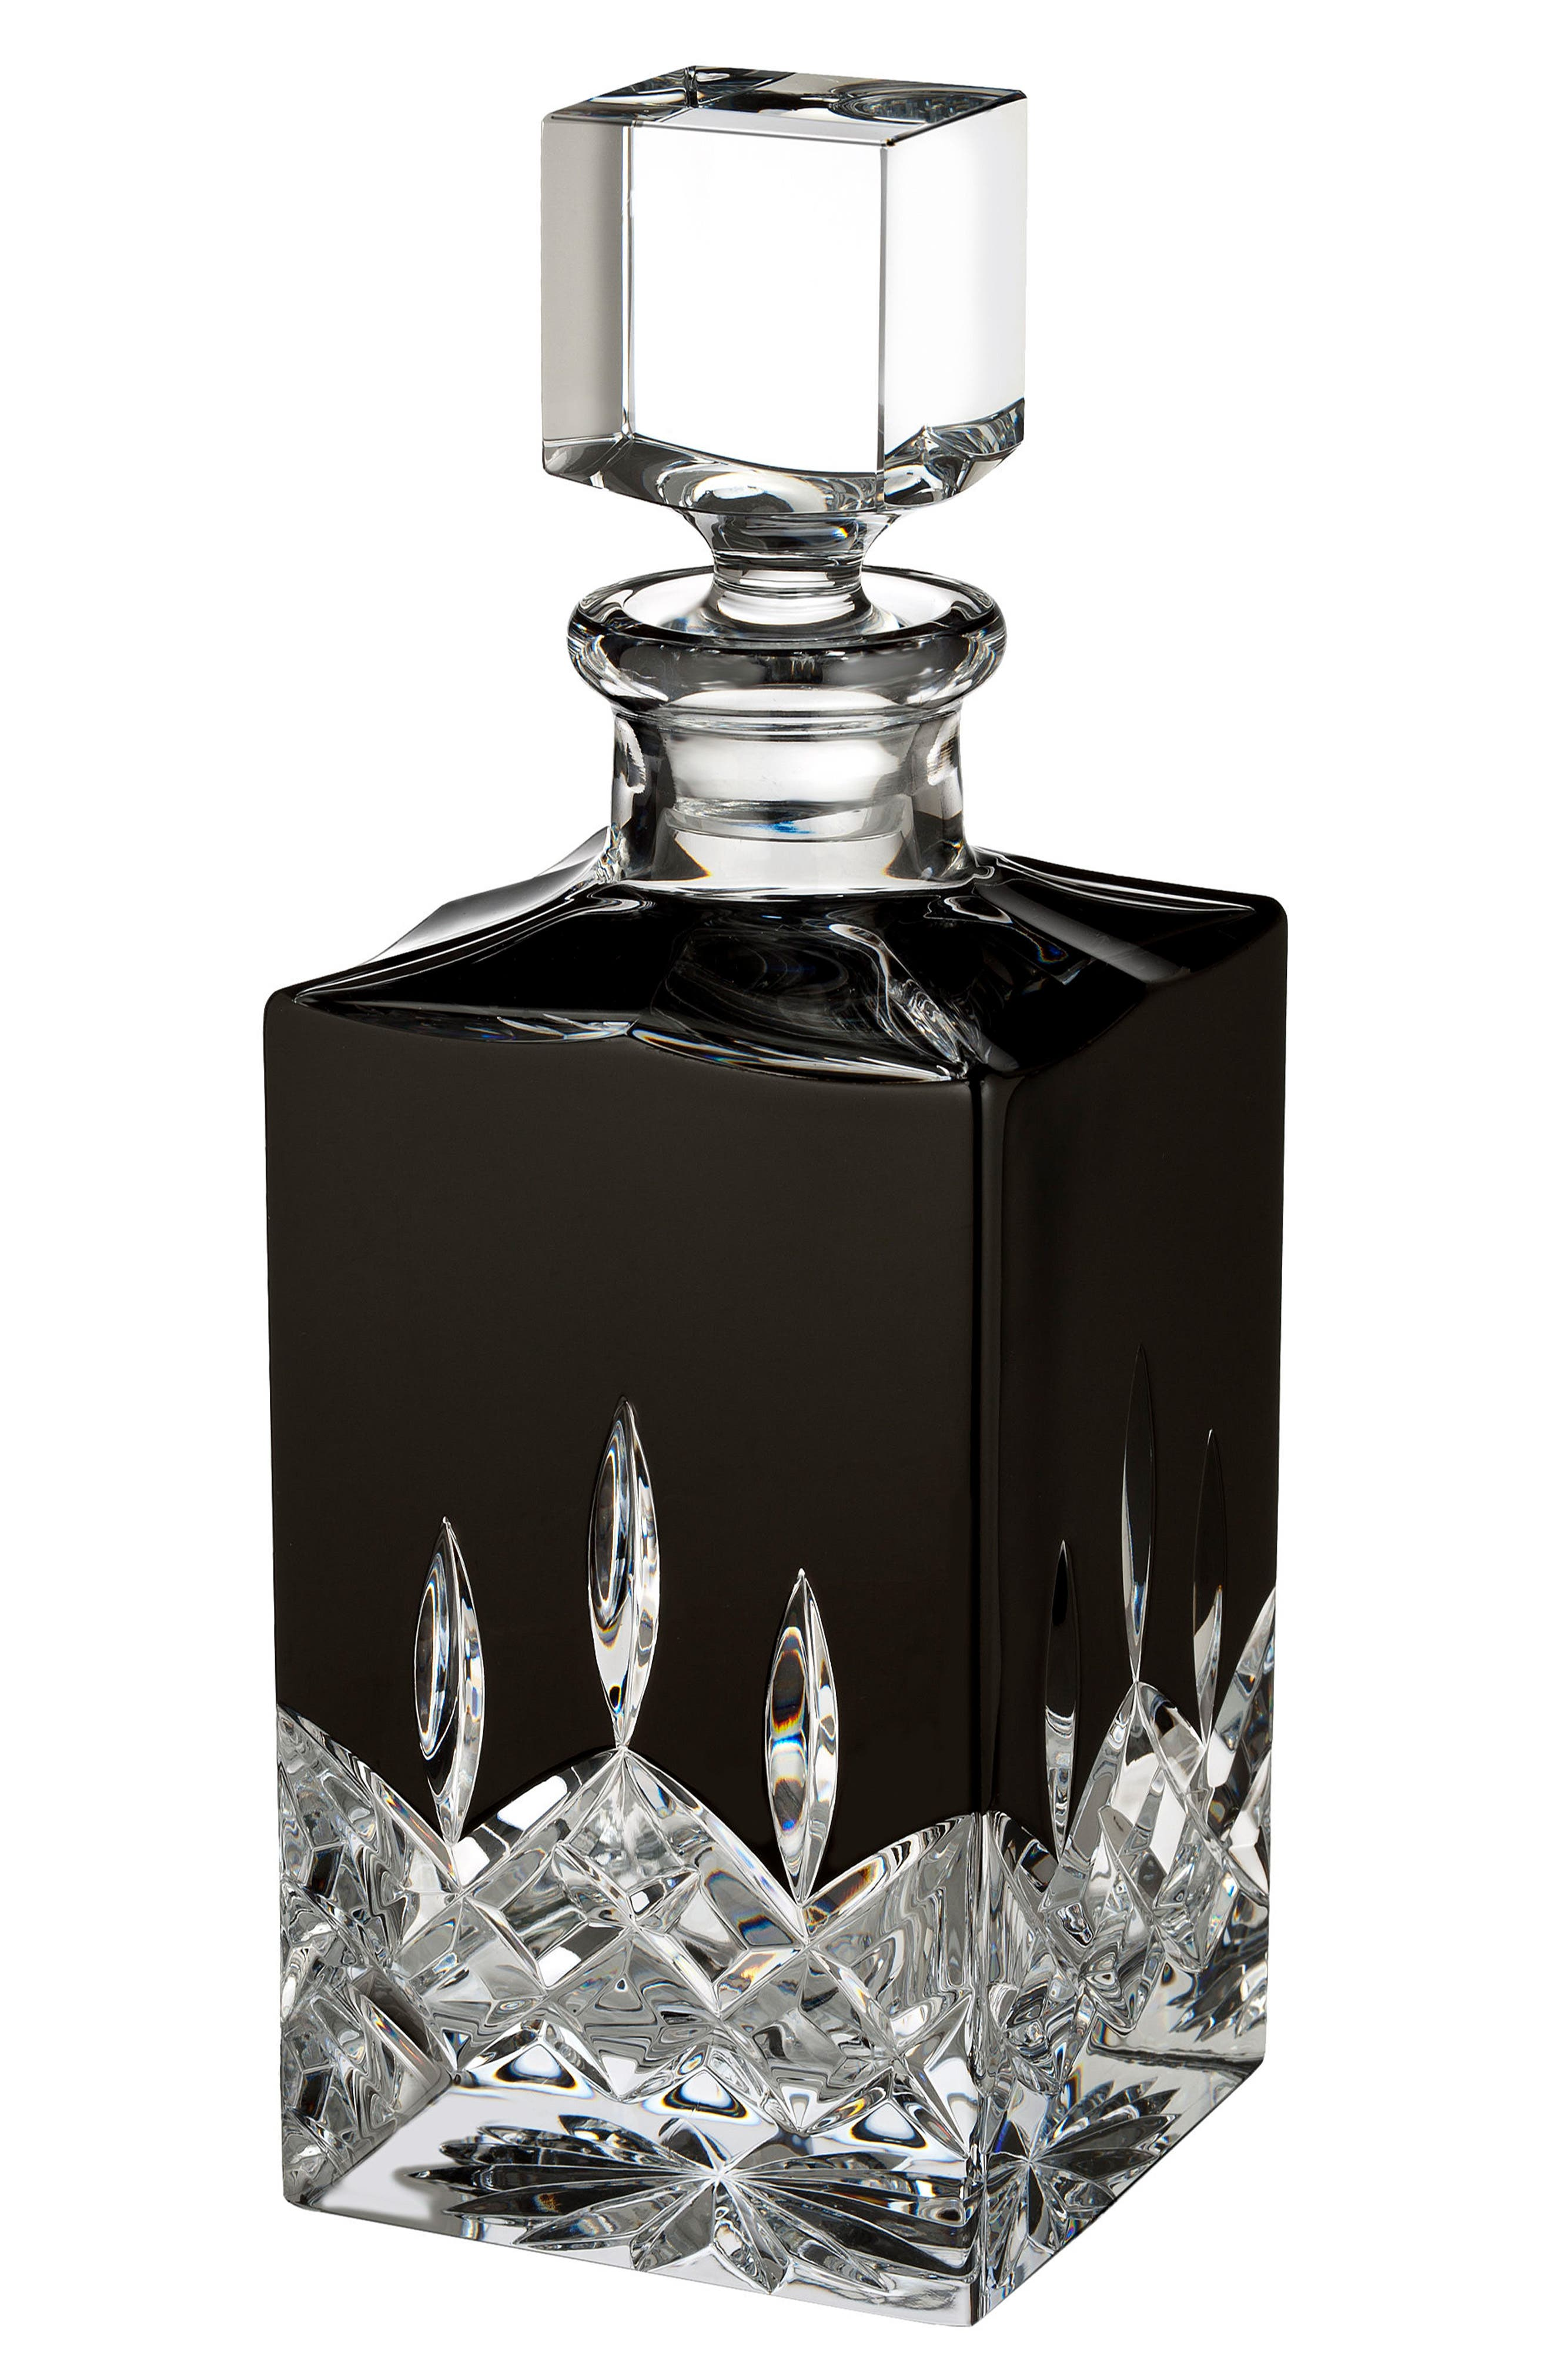 Main Image - Waterford Lismore Black Square Lead Crystal Decanter